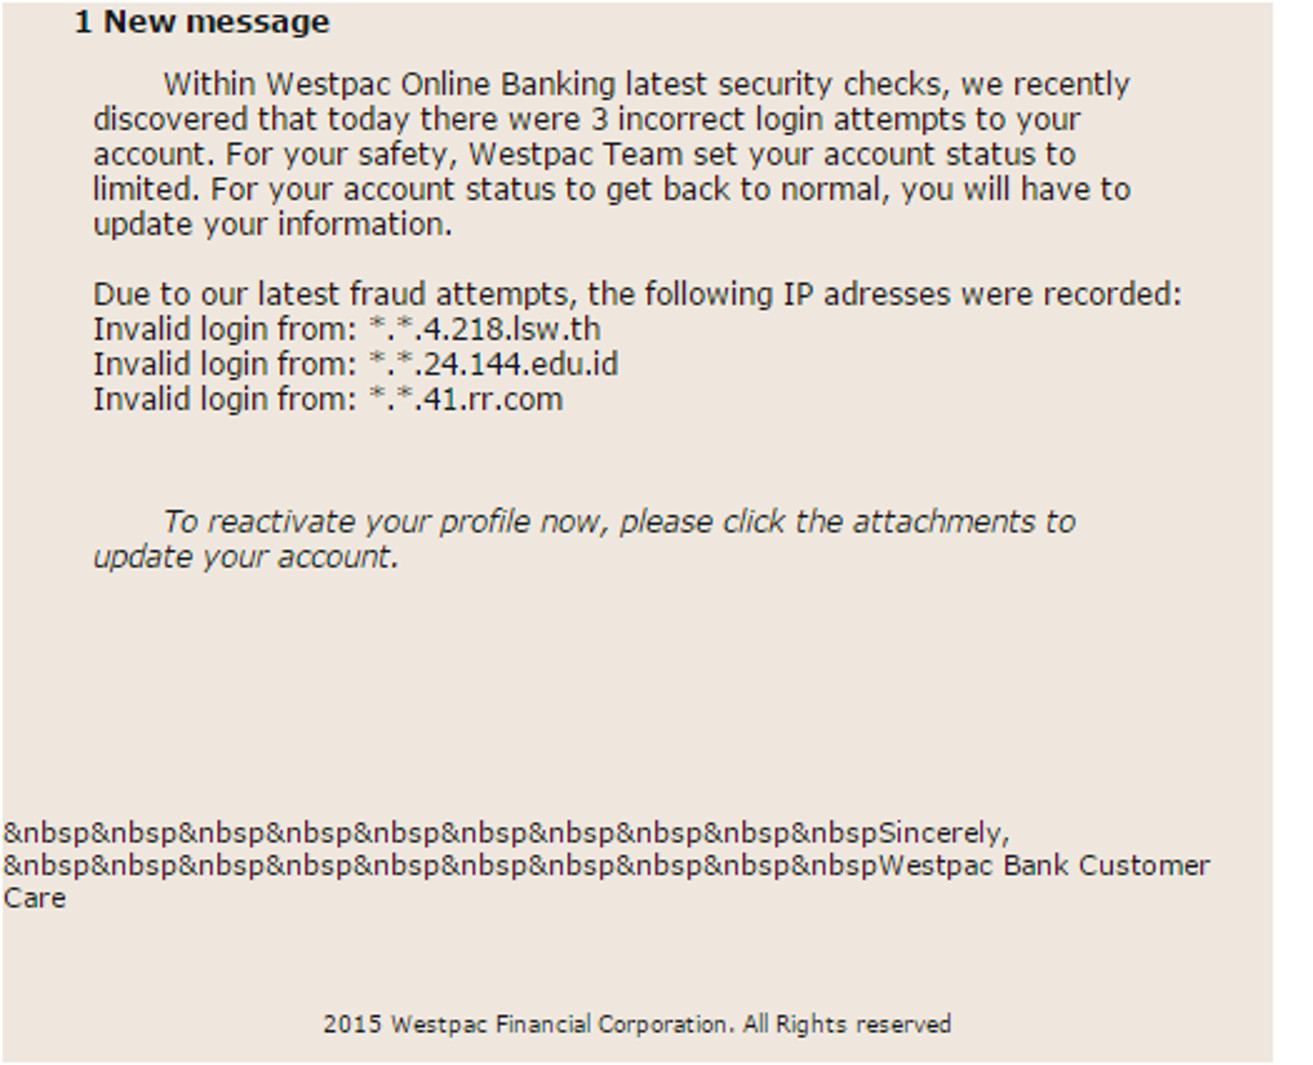 Fake email attachment contains malware - MailShark